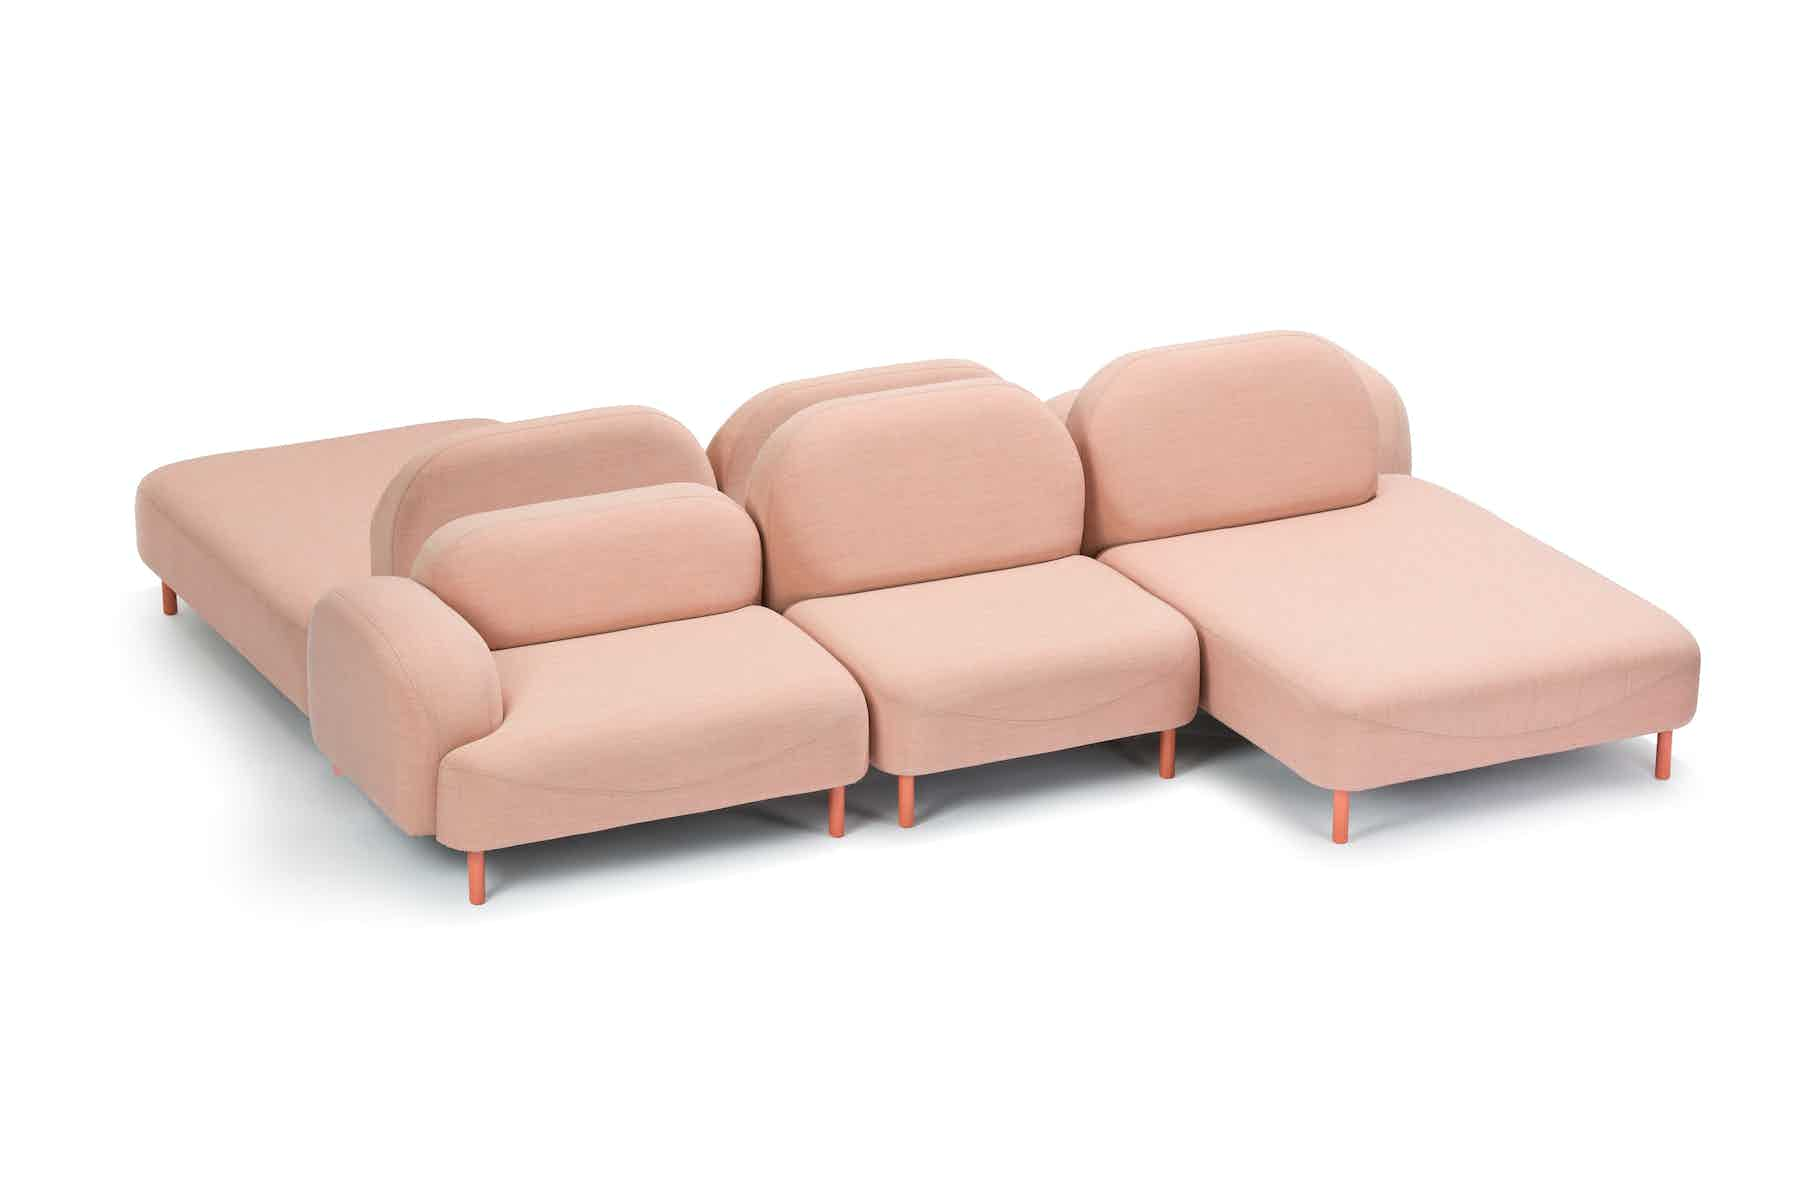 Deadgood-scafell-modular-sofa-peach-haute-living